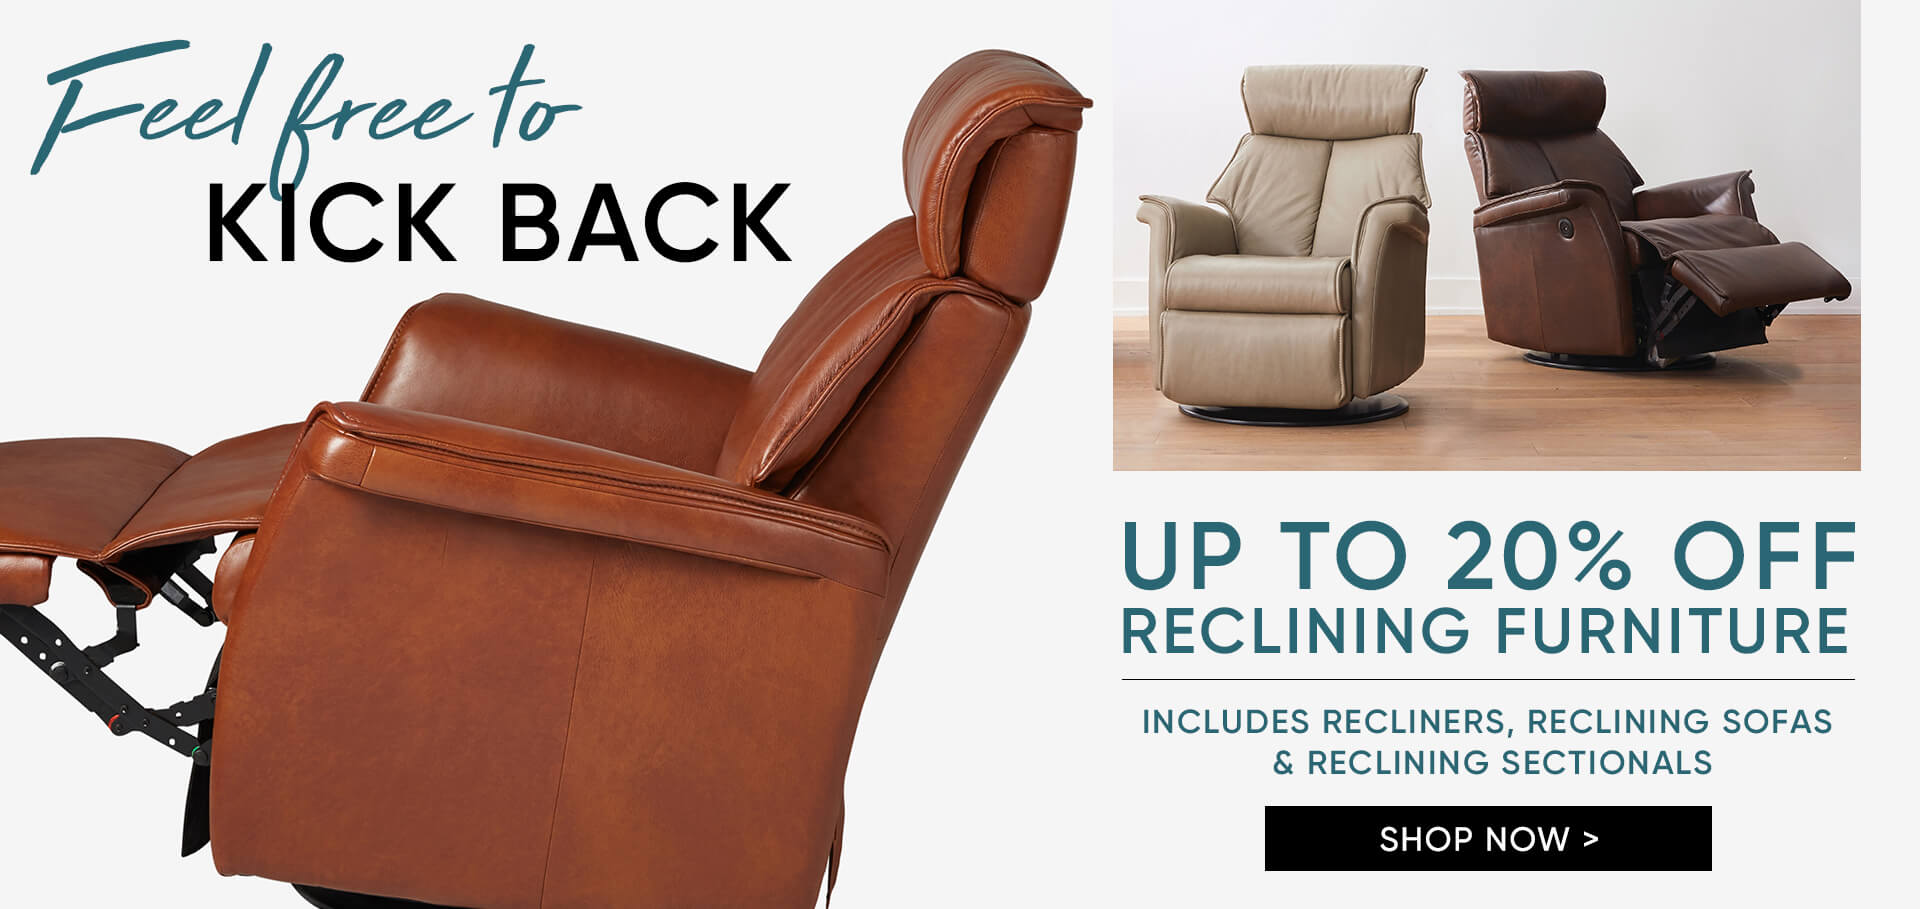 Up to 20% off Reclining Furniture